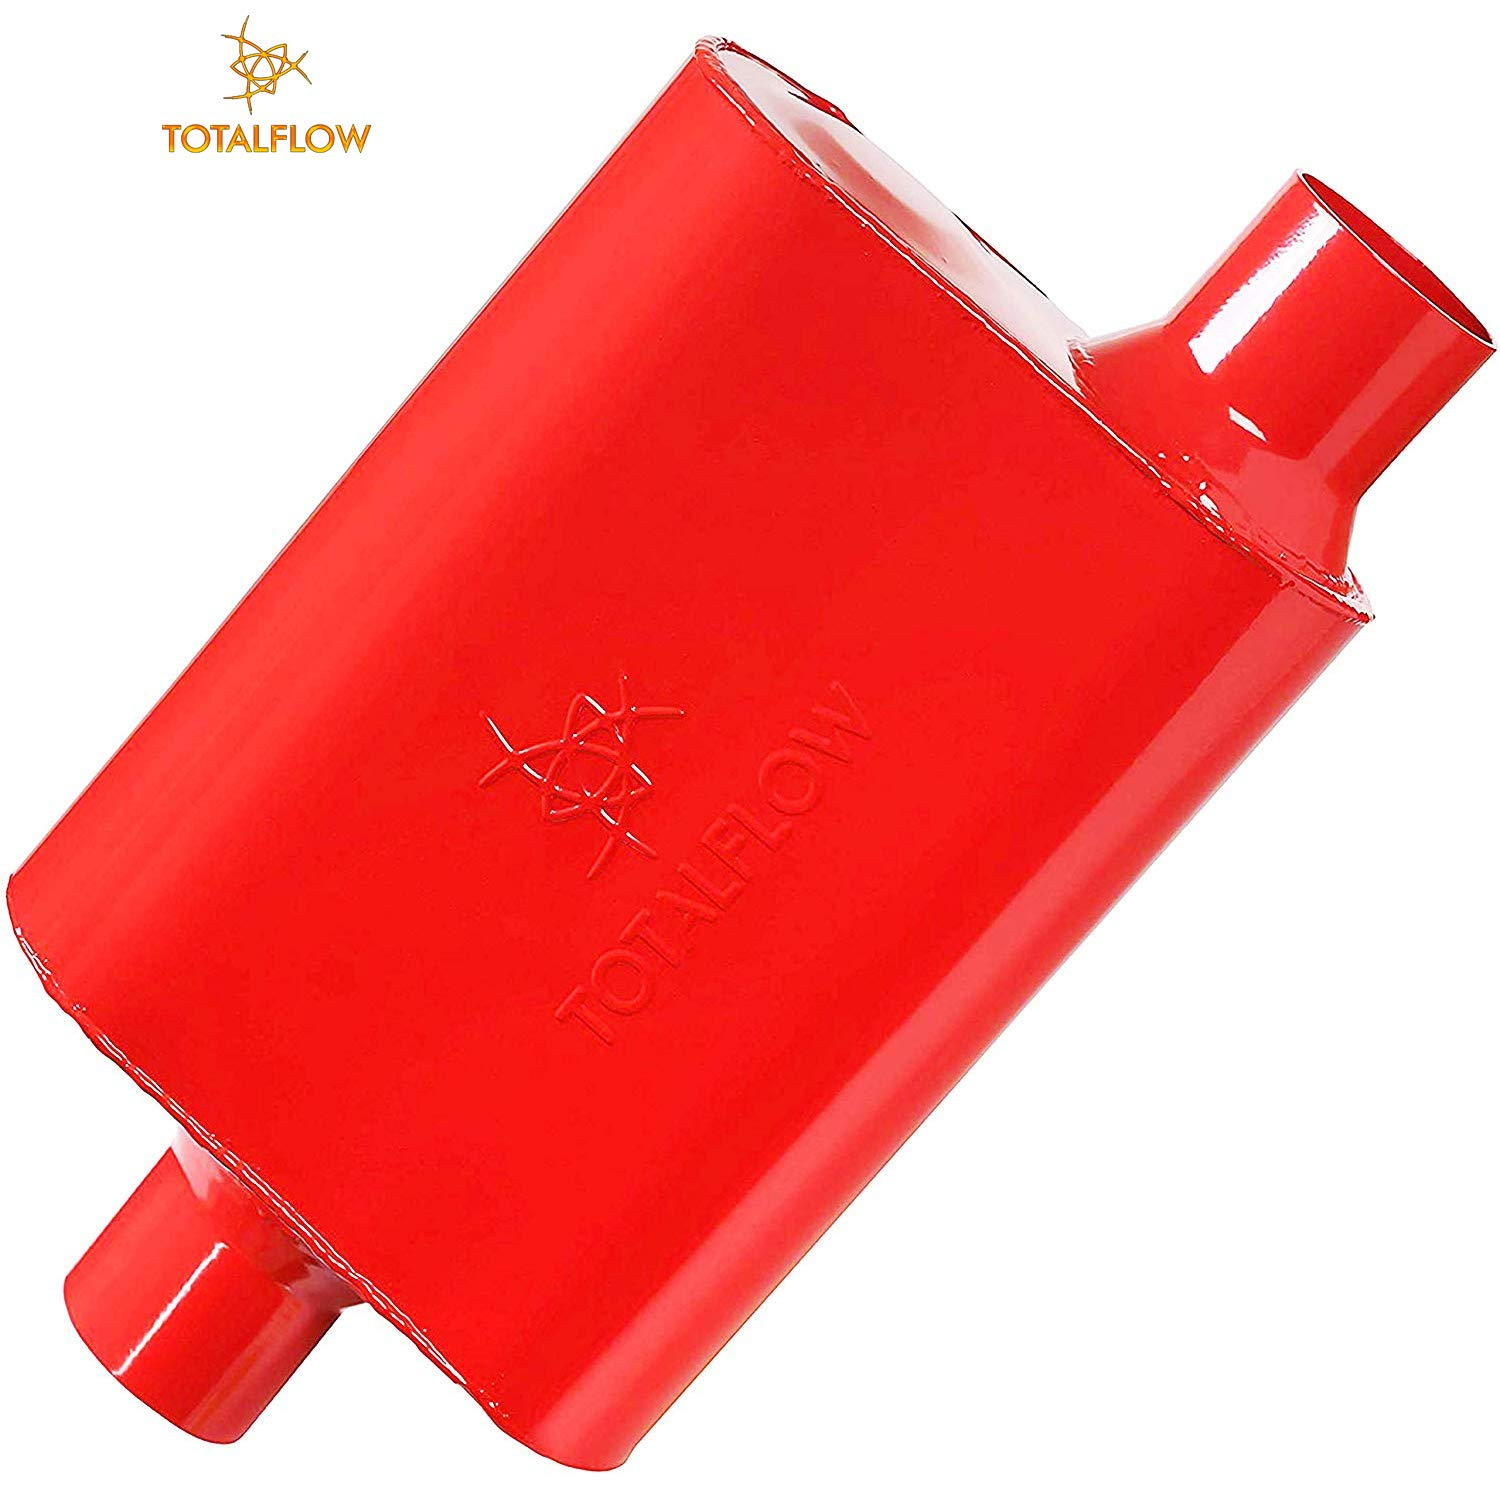 TOTALFLOW Red 15042 Two-Chamber Universal Muffler 3' Center in / 3' Offset Out